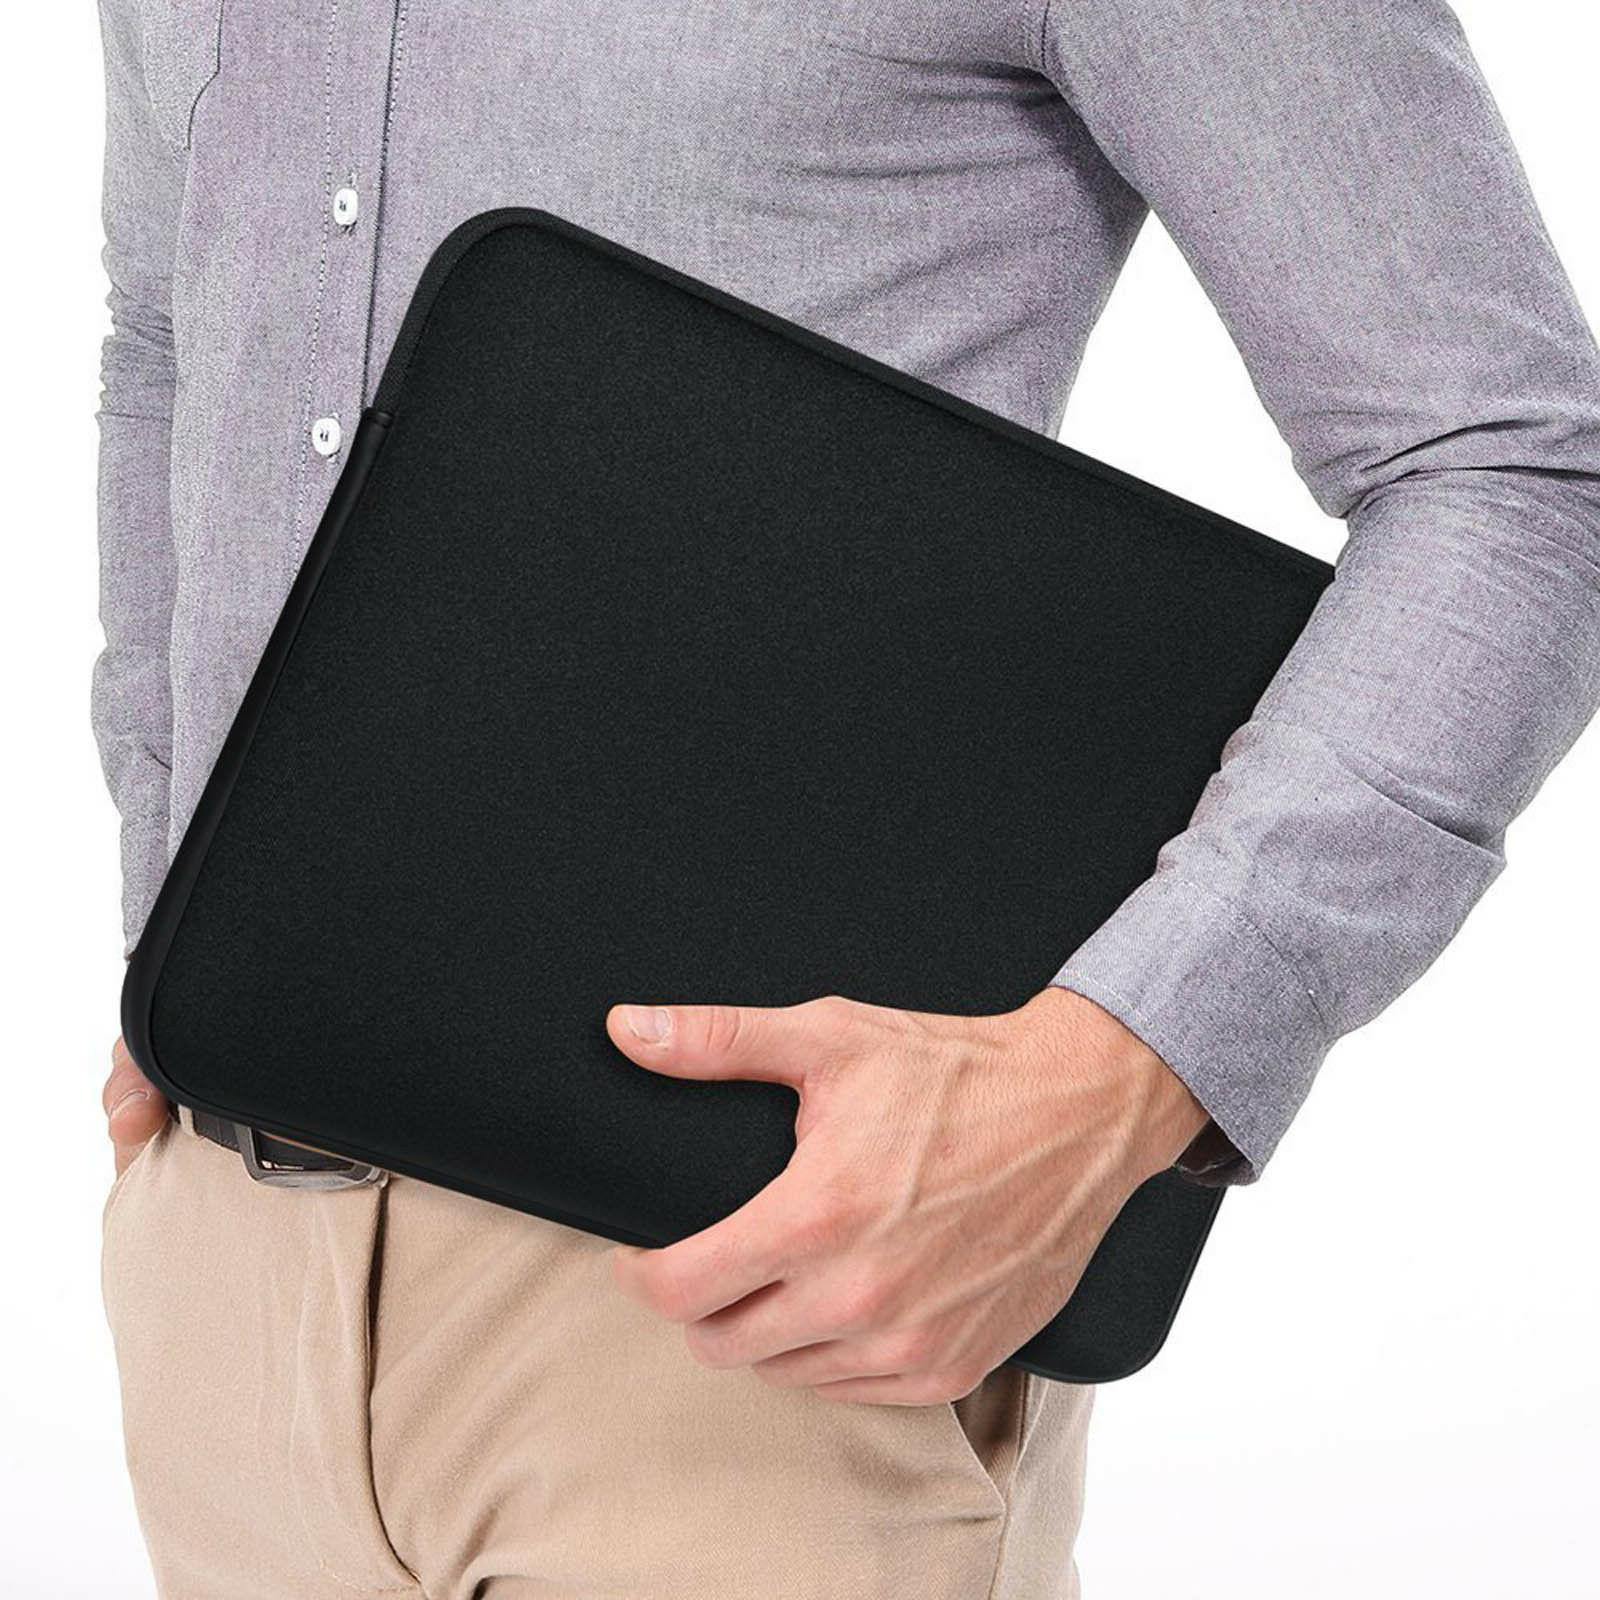 Laptop Water-Resistant Shockproof Notebook Case Carrying